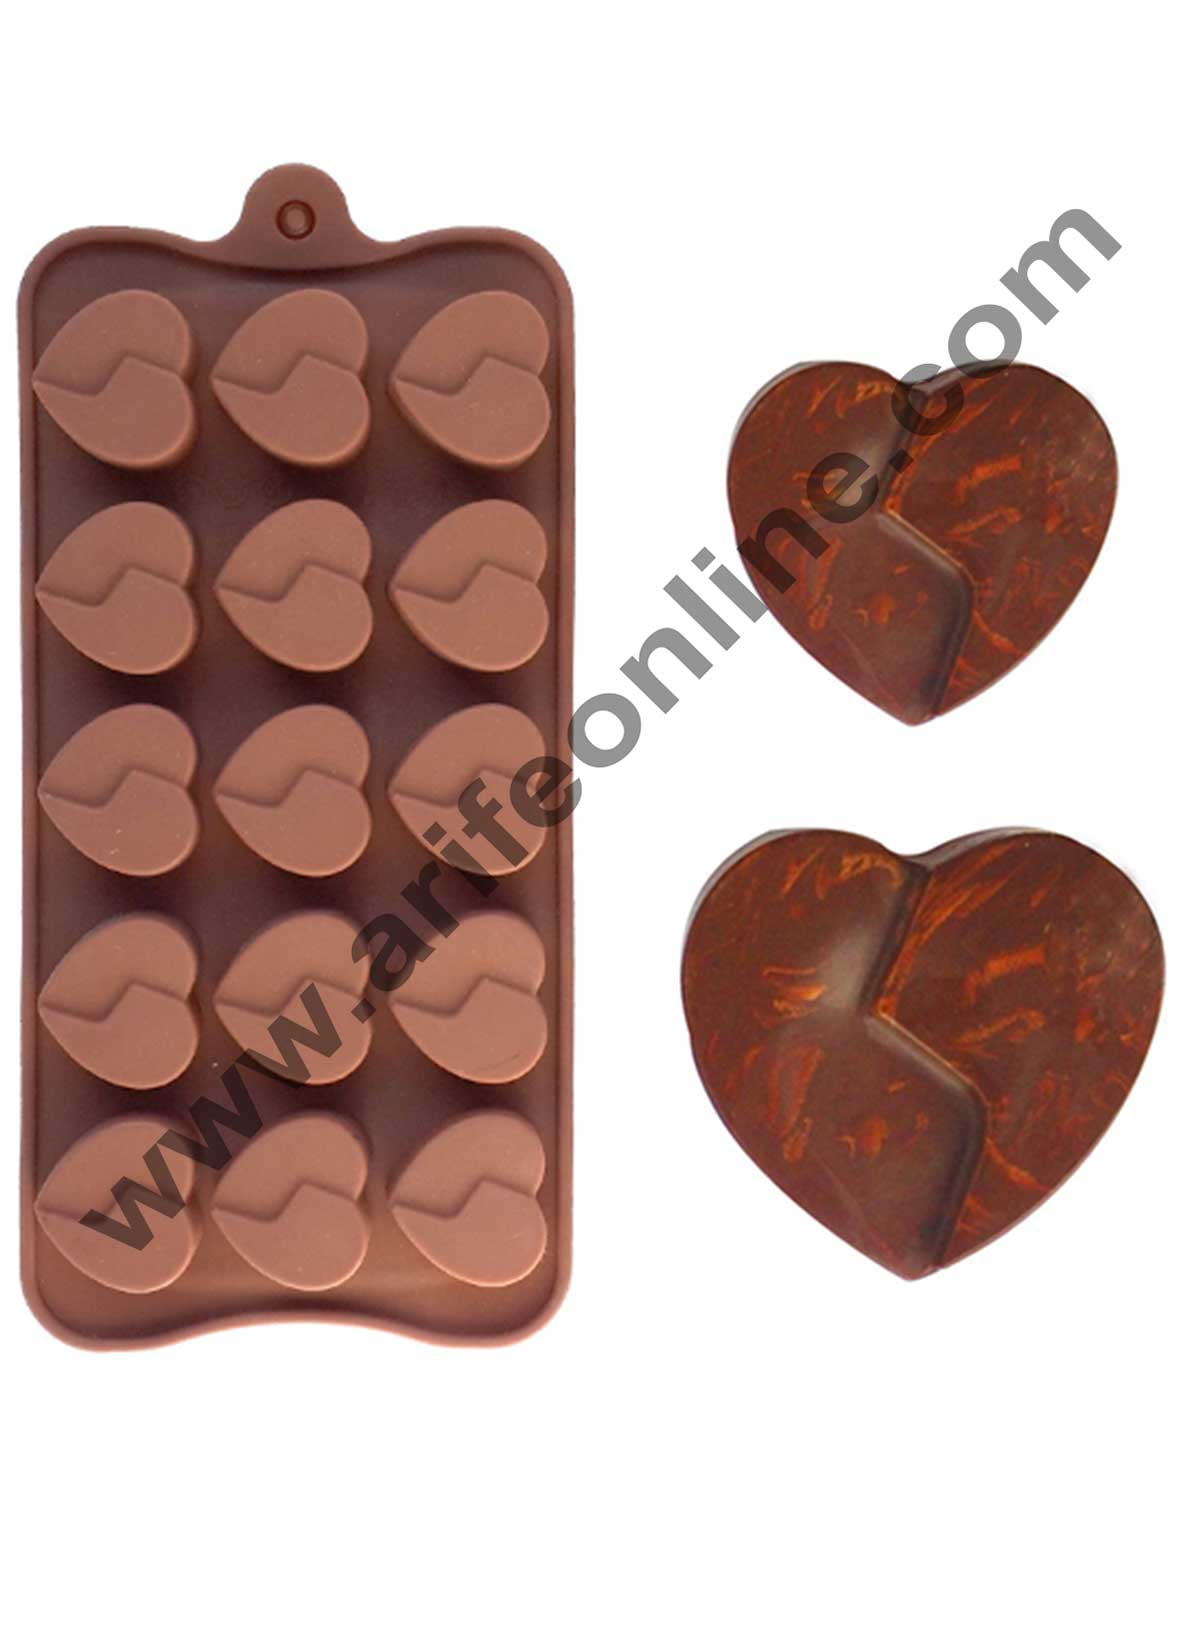 Cake Decor Silicon 15 Cavity Double Heart Shape Brown Chocolate Mould, Ice Mould, Chocolate Decorating Mould